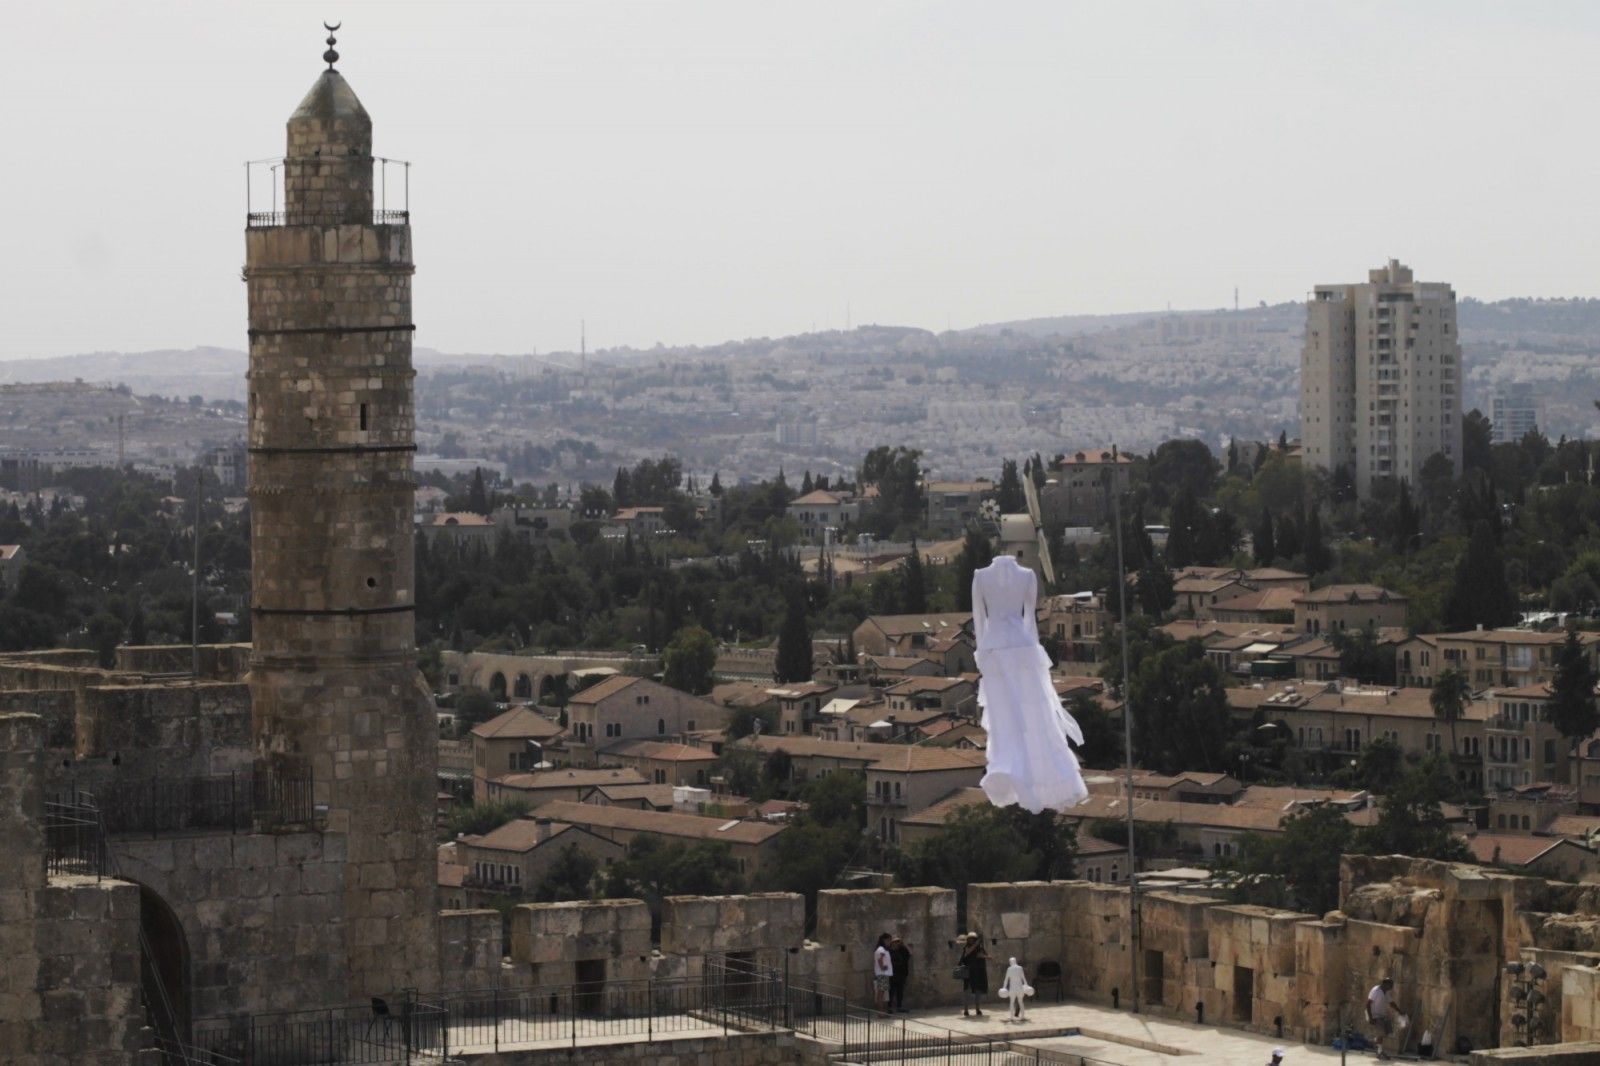 Motti Mizrahi's suspended dress installation at the Tower of David Museum for Biennale 2015.  Photo by Ricky Rachman